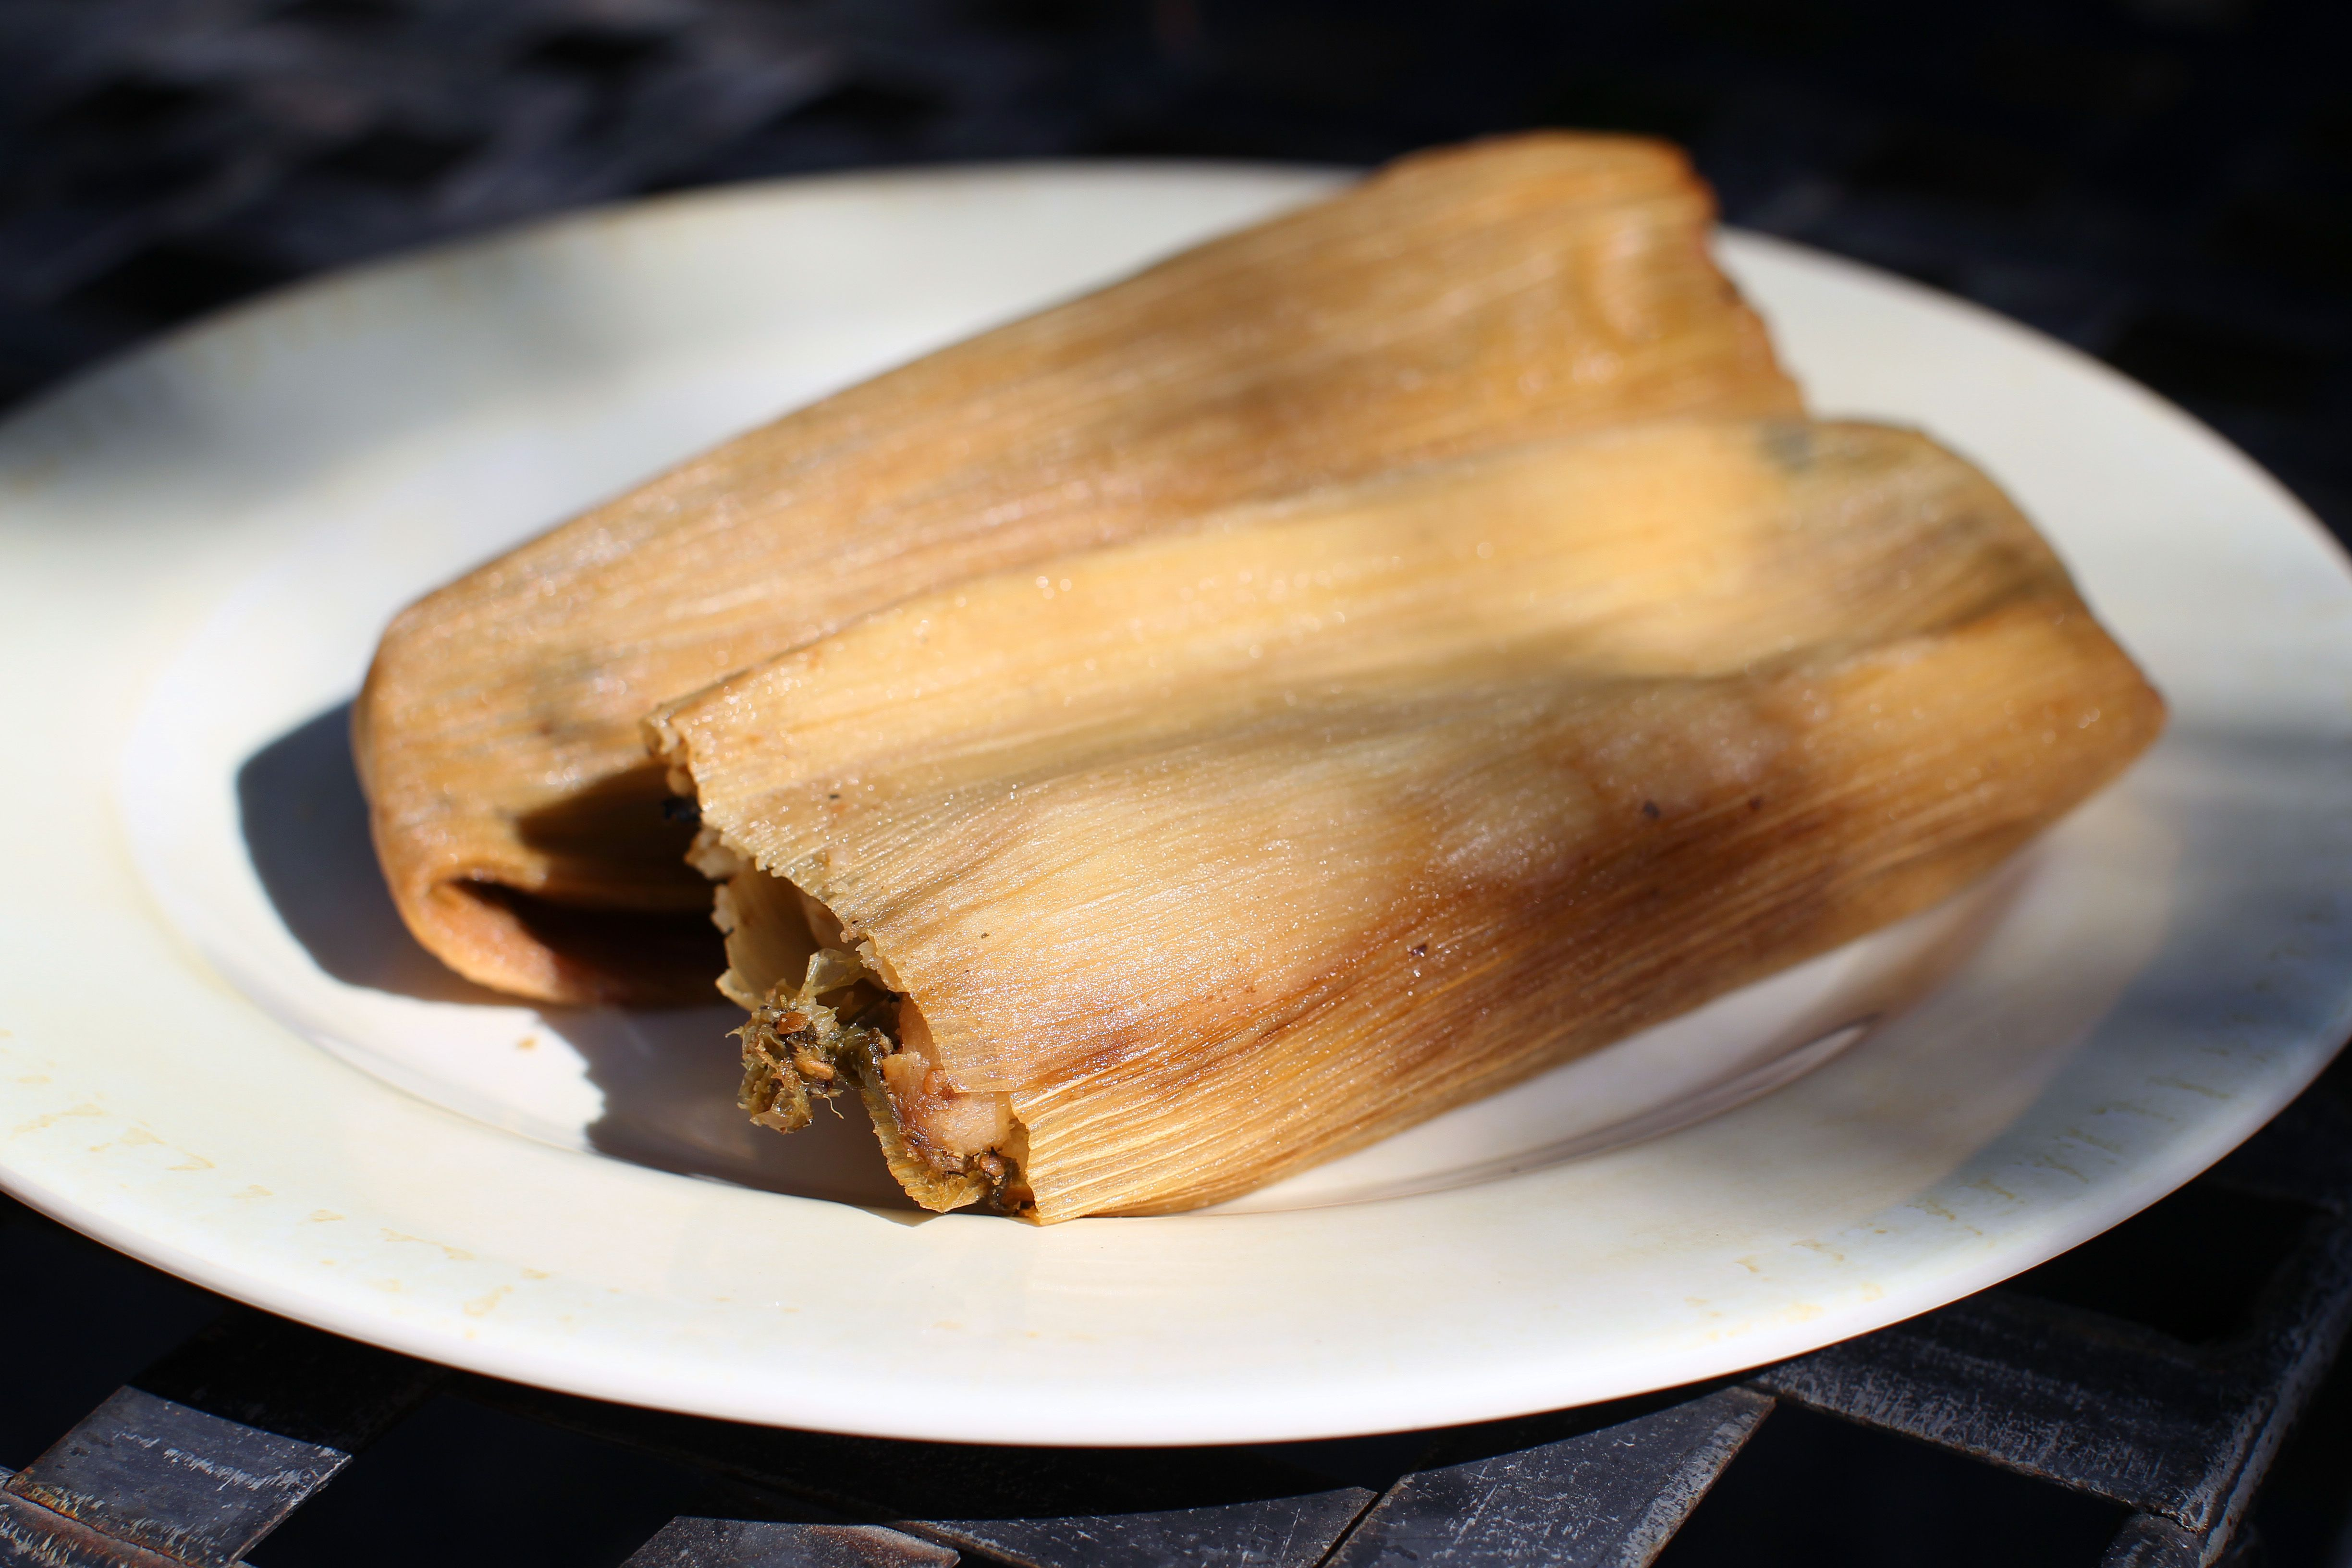 How To Steam A Tamale Without A Steamer Basket Cooking Dried Beans Cooking Pork Tenderloin Tamales